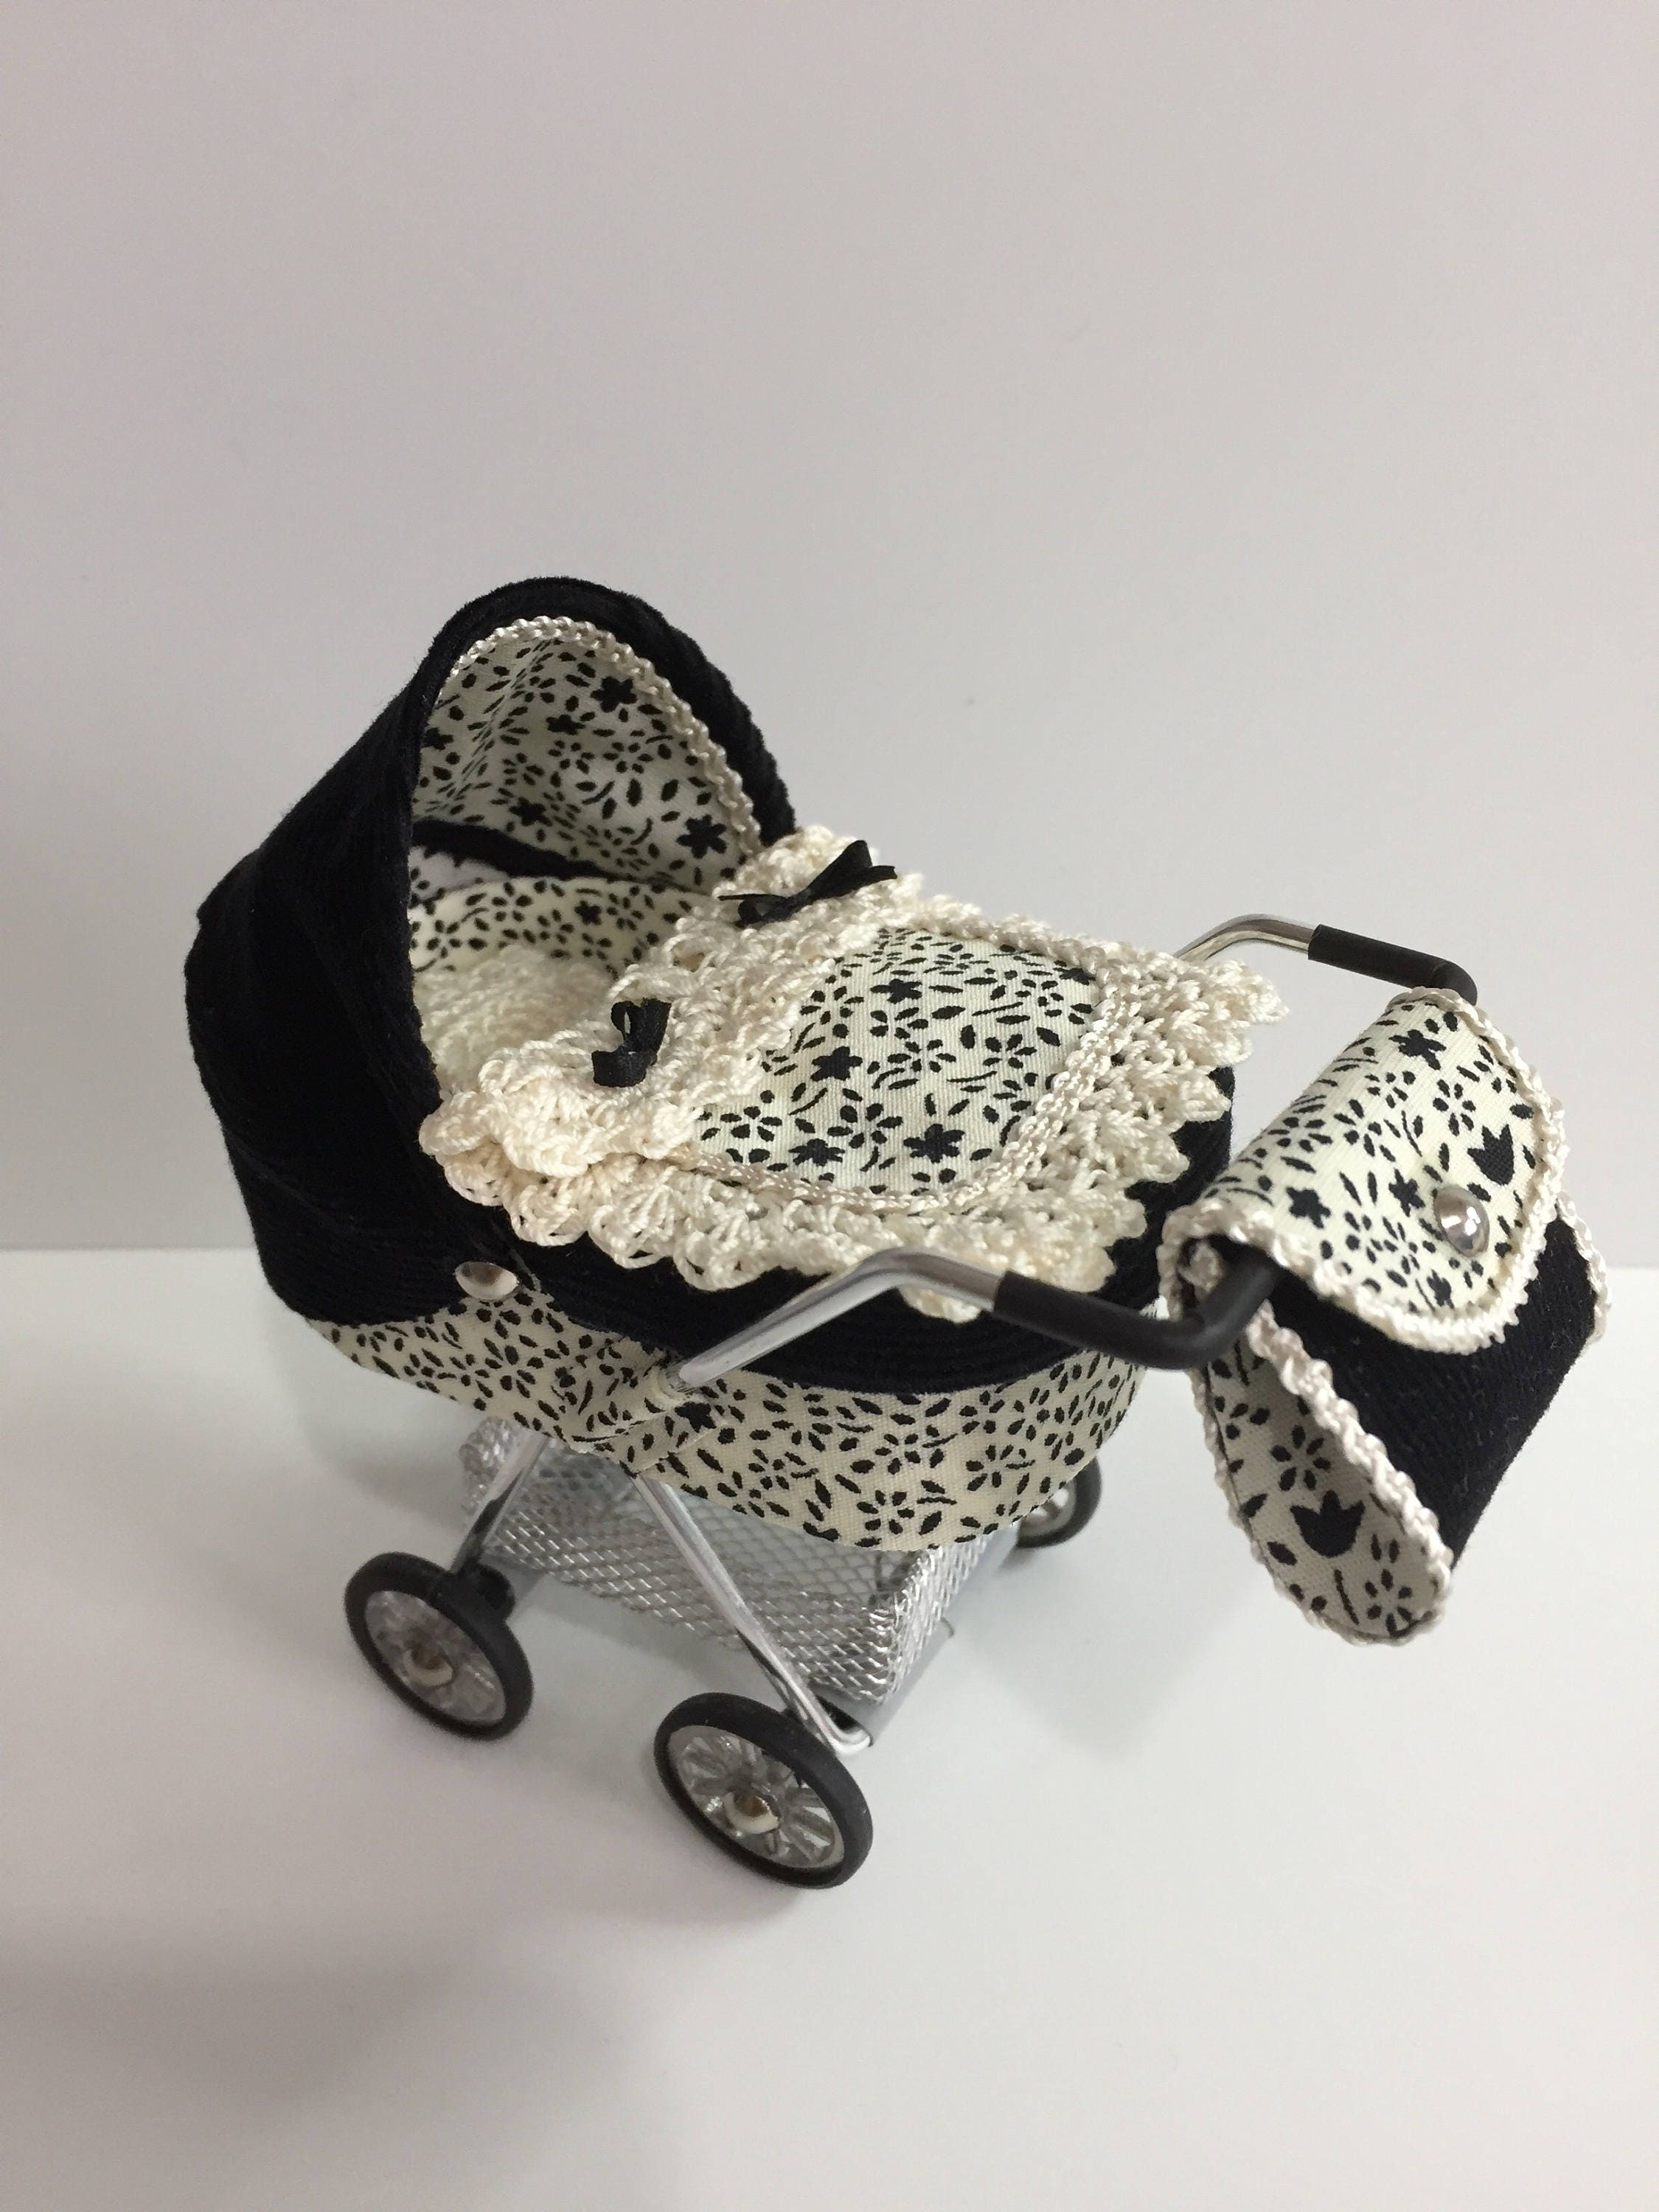 DOLLS HOUSE 112th scale modern dolls house pramstrollerbuggy in black and cream floral